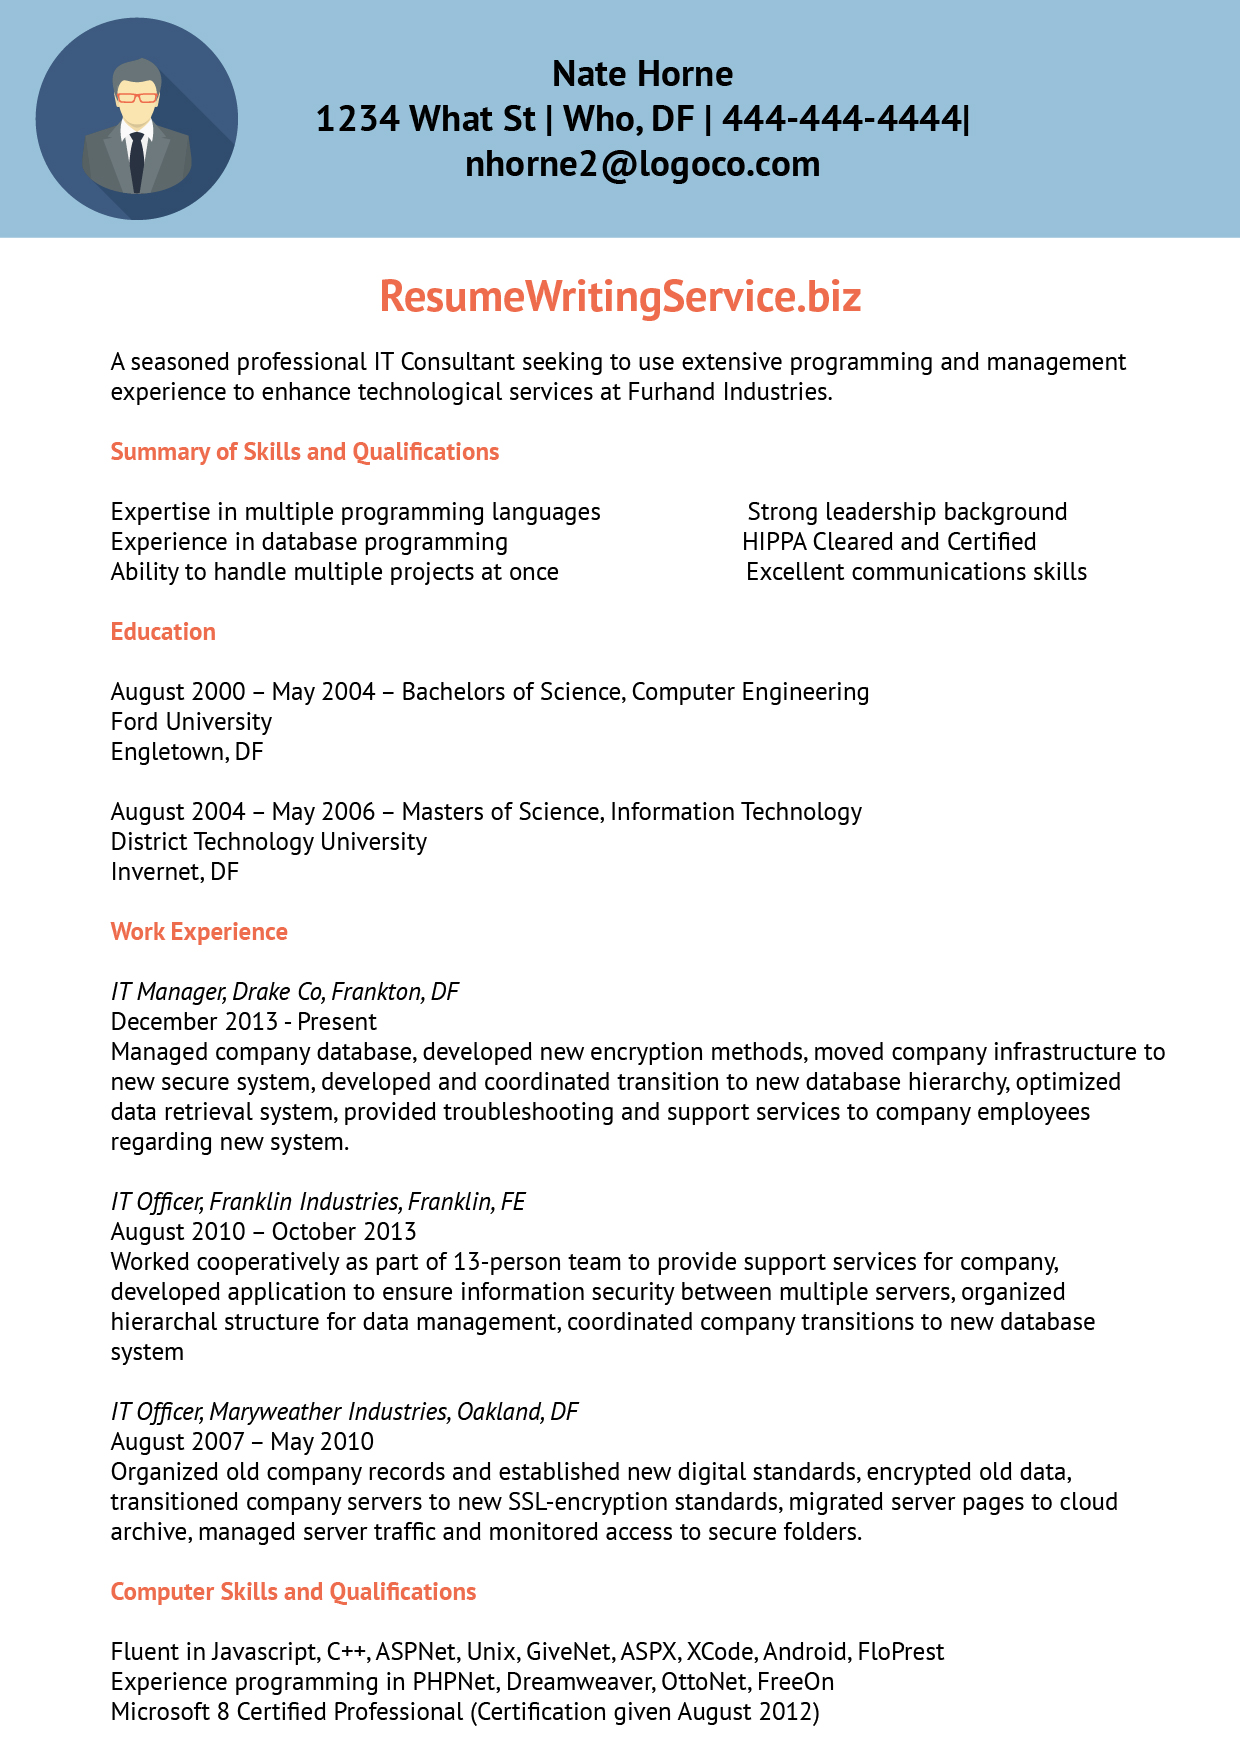 Resume examples for information technology